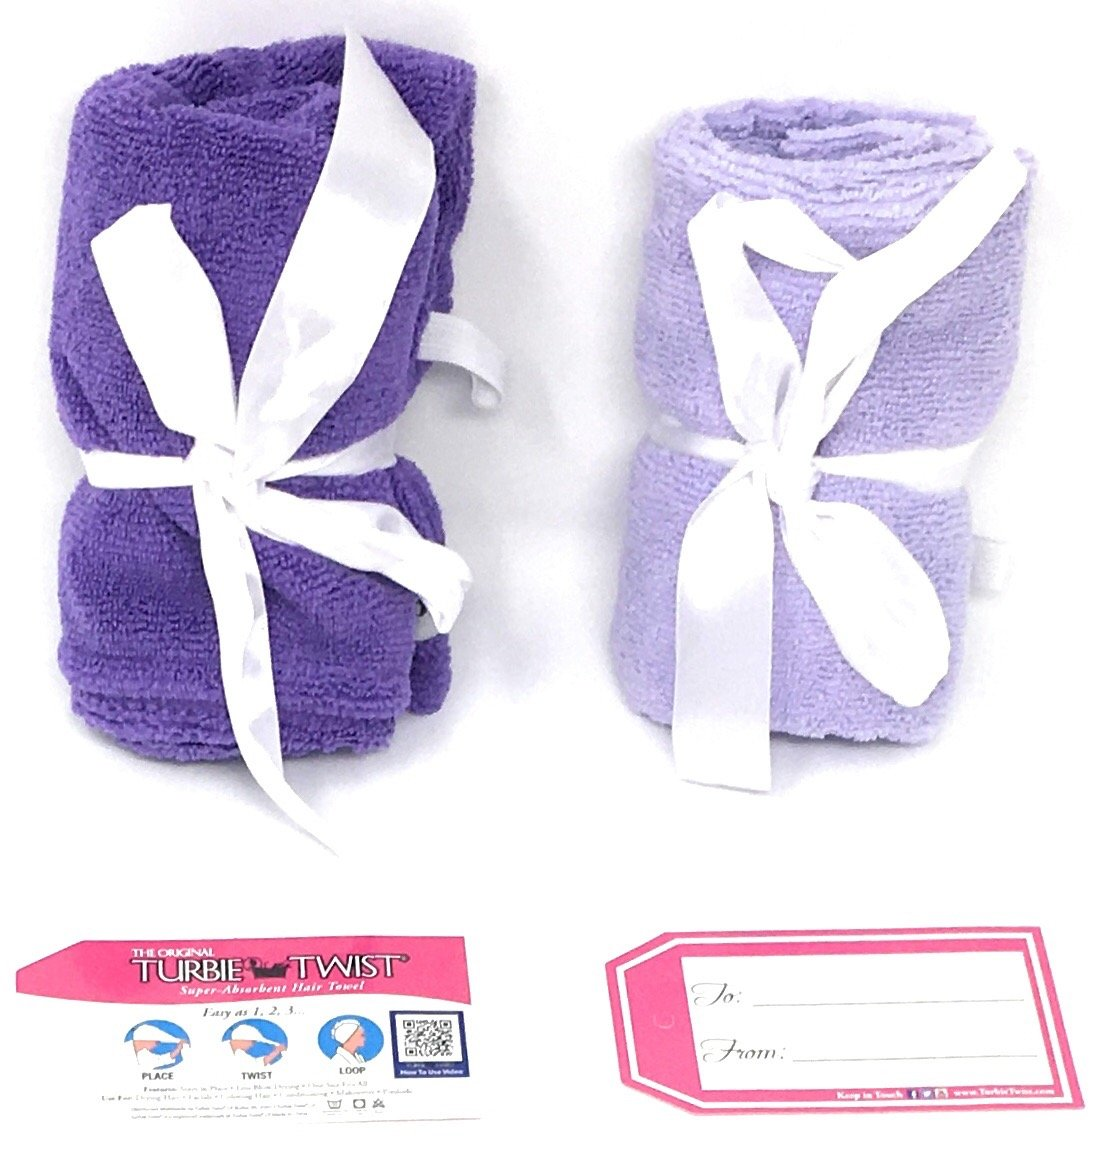 Turbie Twist 6 Pack Light and Dark Pink,Purple, Aqua Microfiber Hair towels by Turbie Twist (Image #7)